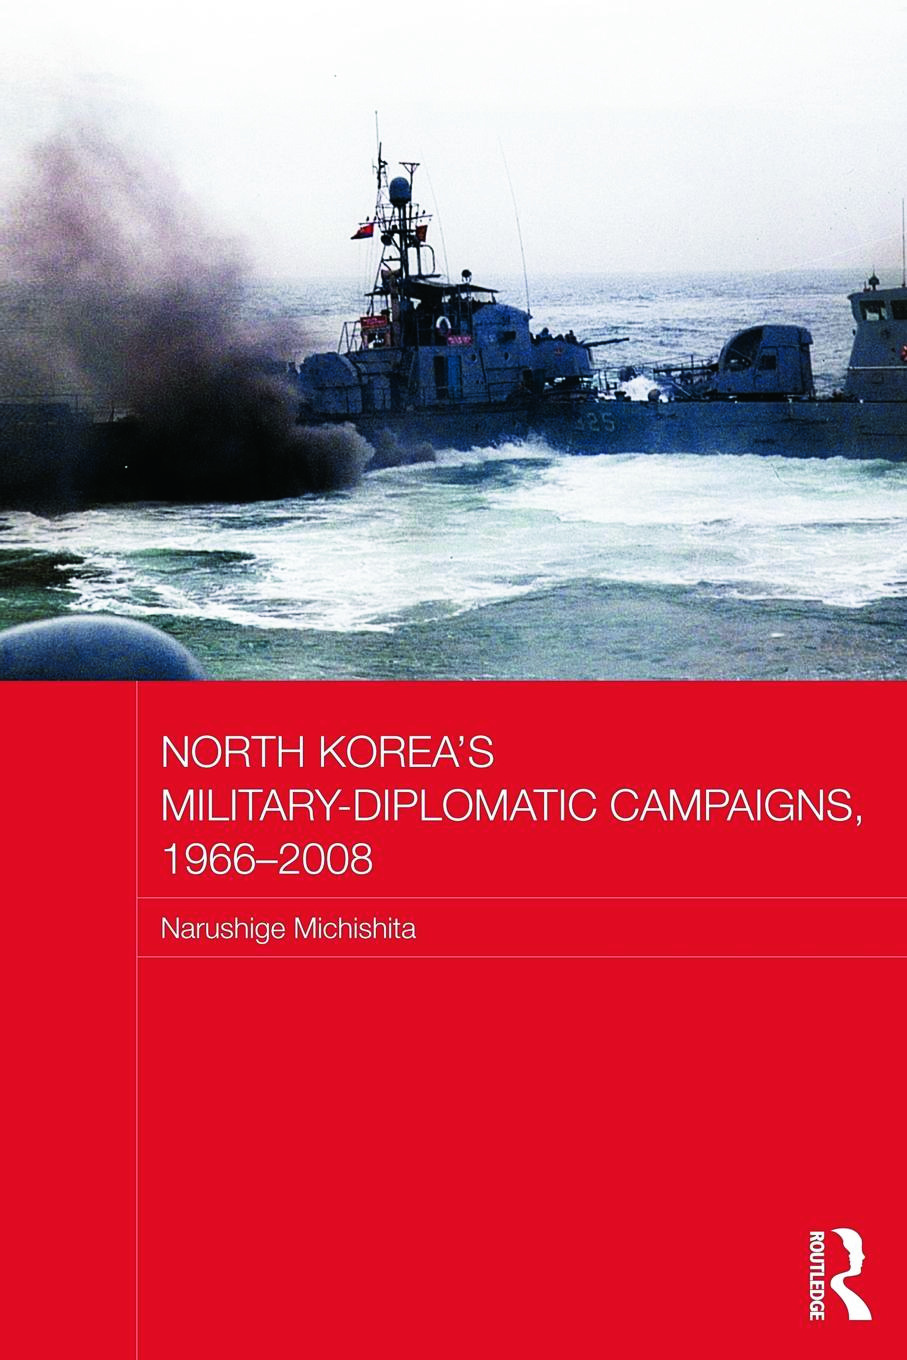 North Korea's Military-Diplomatic Campaigns, 1966-2008 book cover